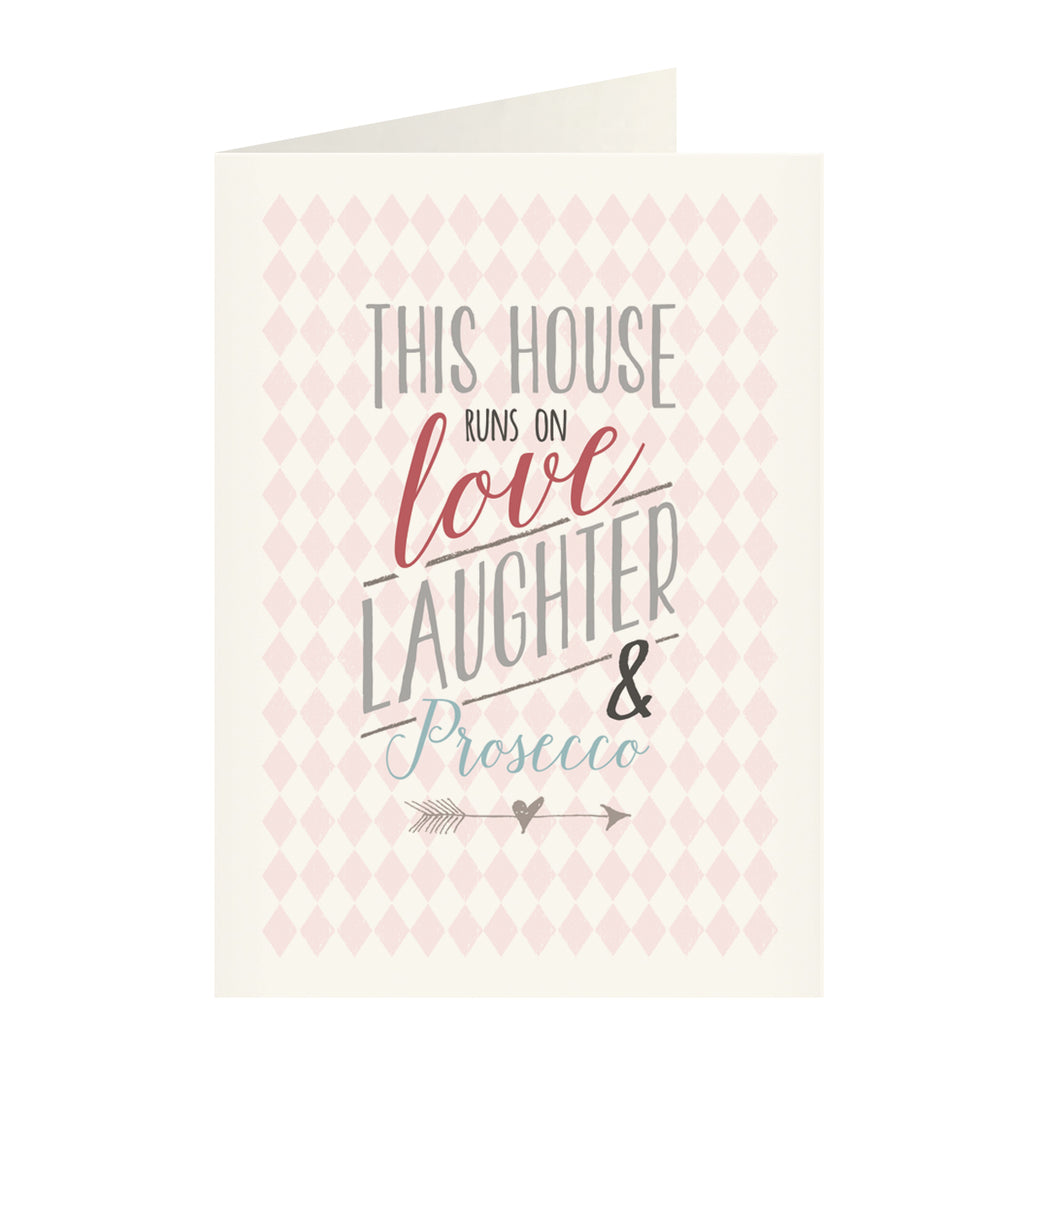 East of India - Just my type greeting card - This house runs on love, laughter & prosecco